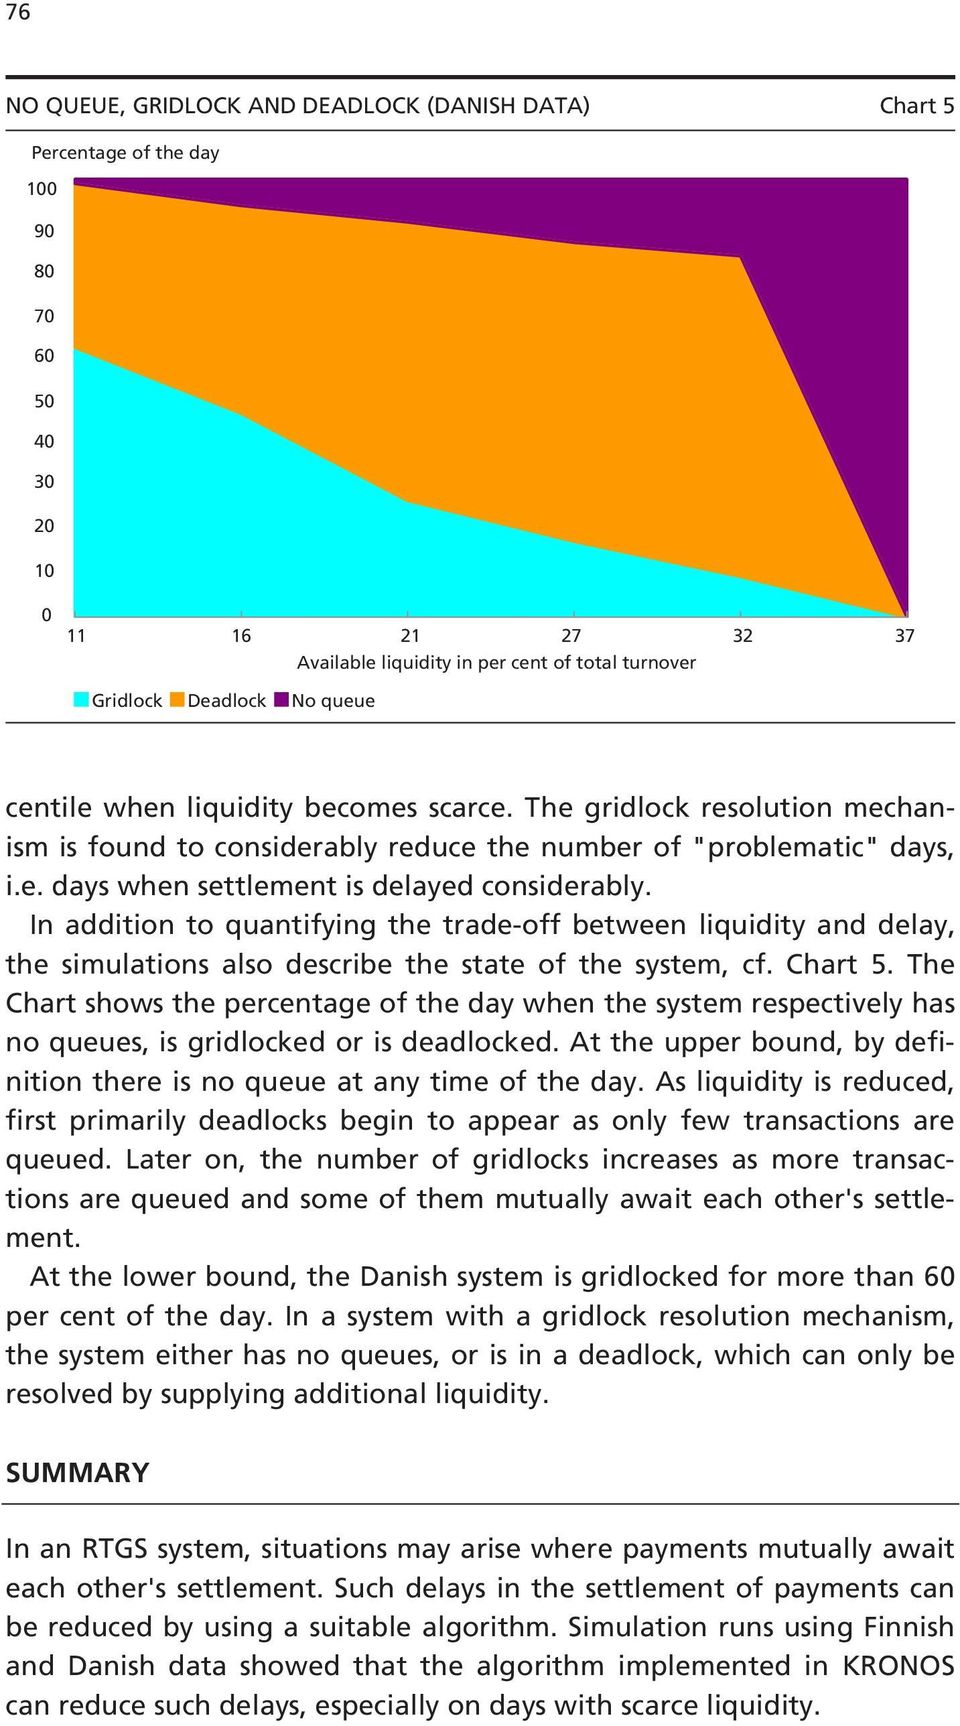 In addition to quantifying the trade-off between liquidity and delay, the simulations also describe the state of the system, cf. Chart 5.